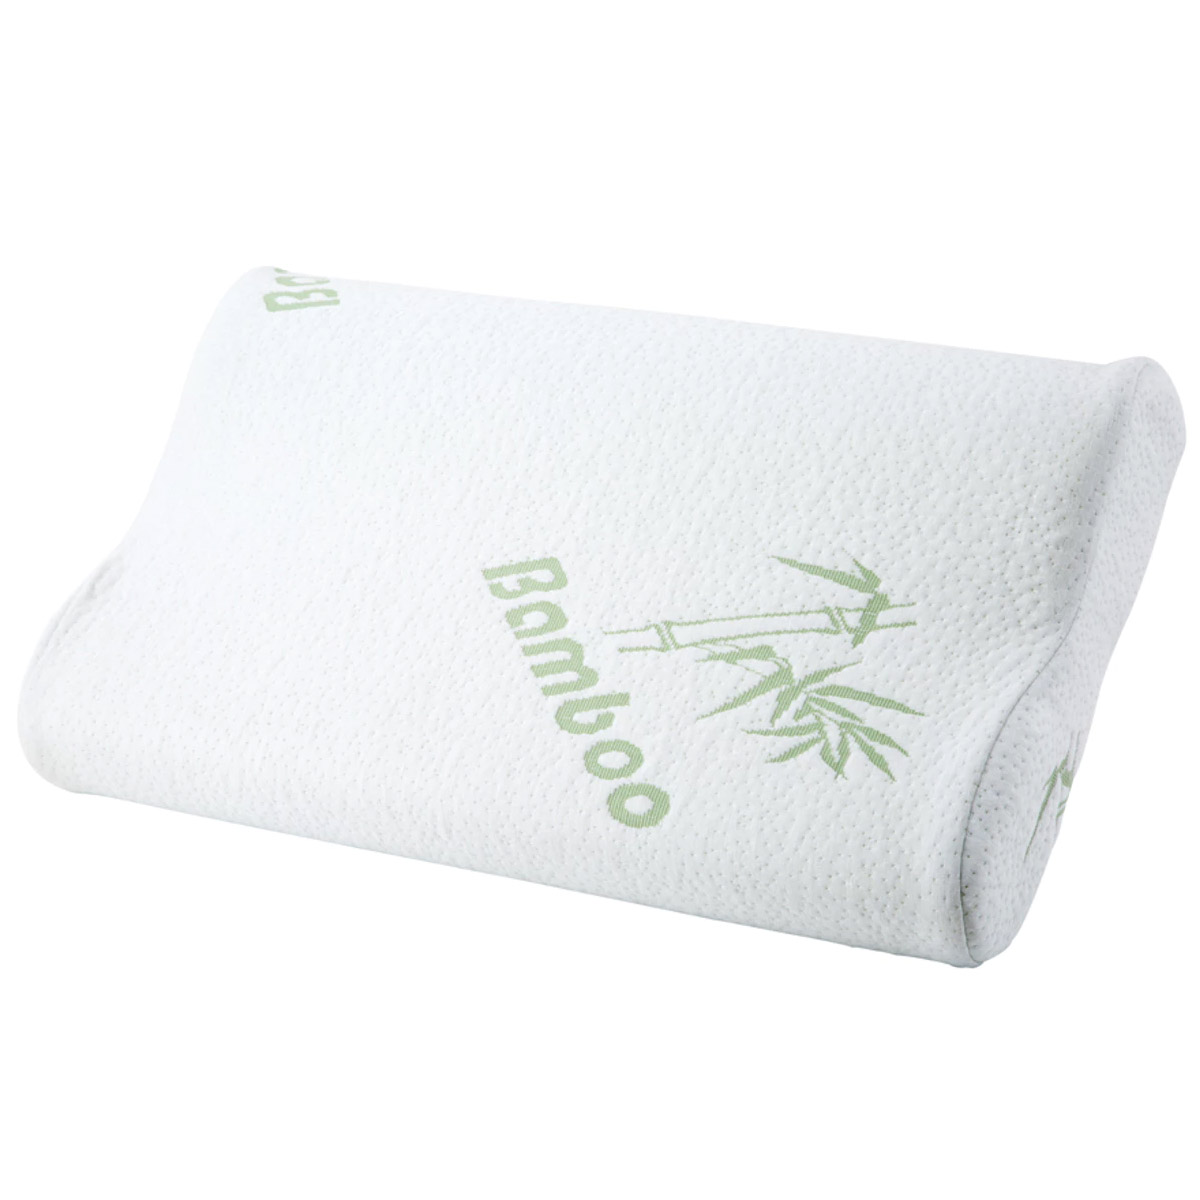 Contoured Memory Foam Pillow with Bamboo Cover